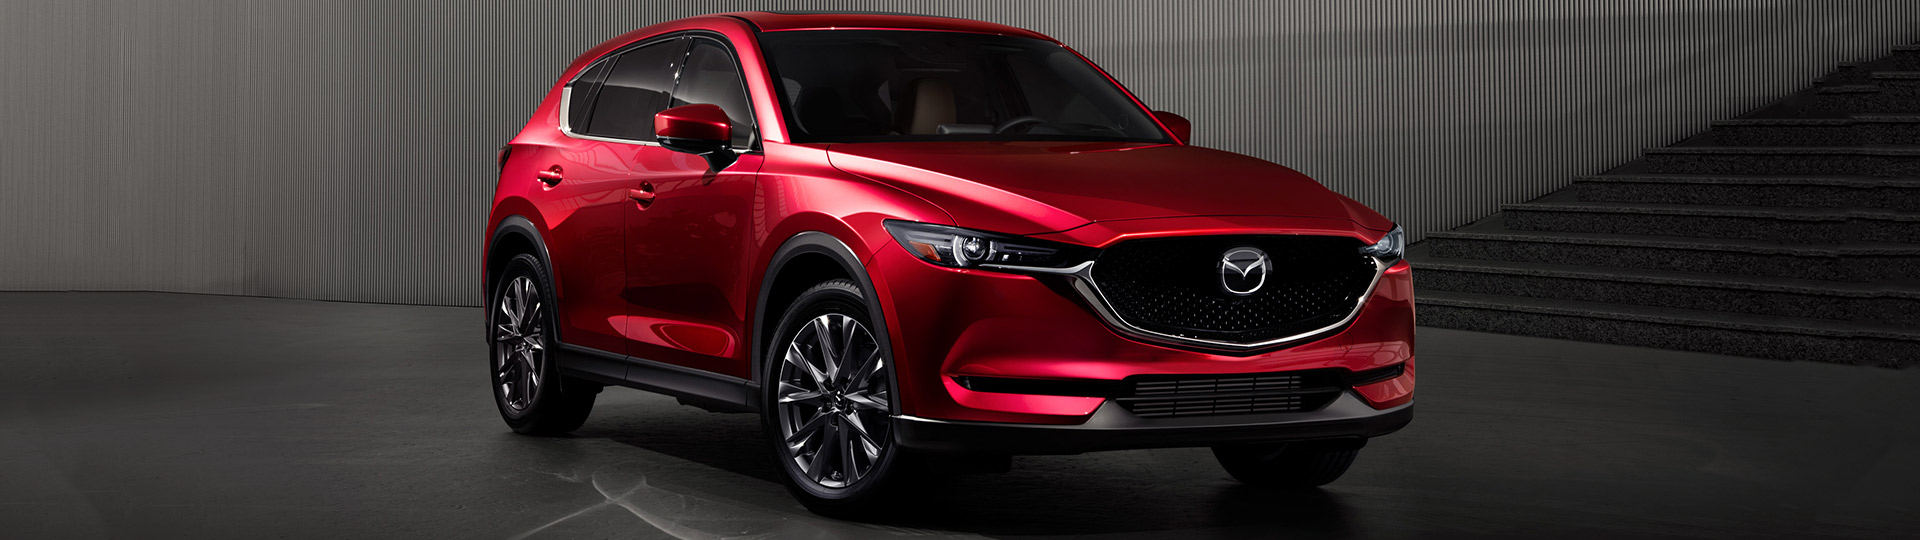 Vehicle Features 2019 Cx 5 Mazda Canada Auto Window Closer Wiring Diagram Back To Top